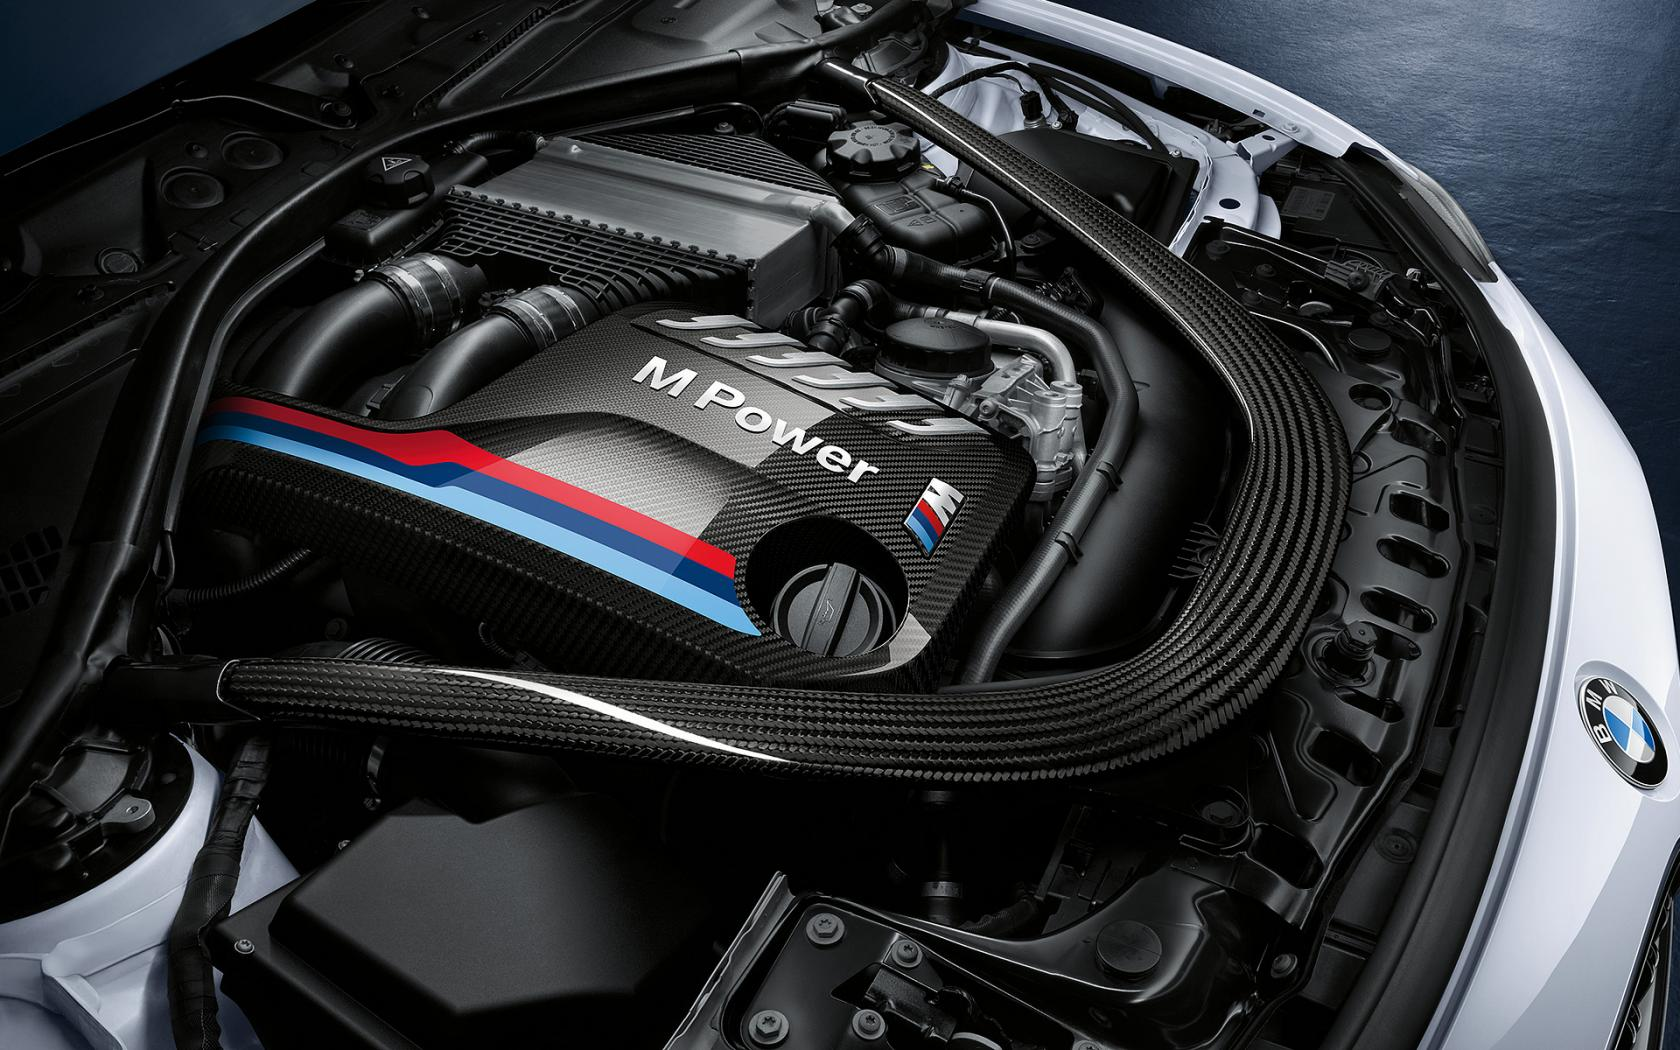 BMW-M-Power-1.jpeg